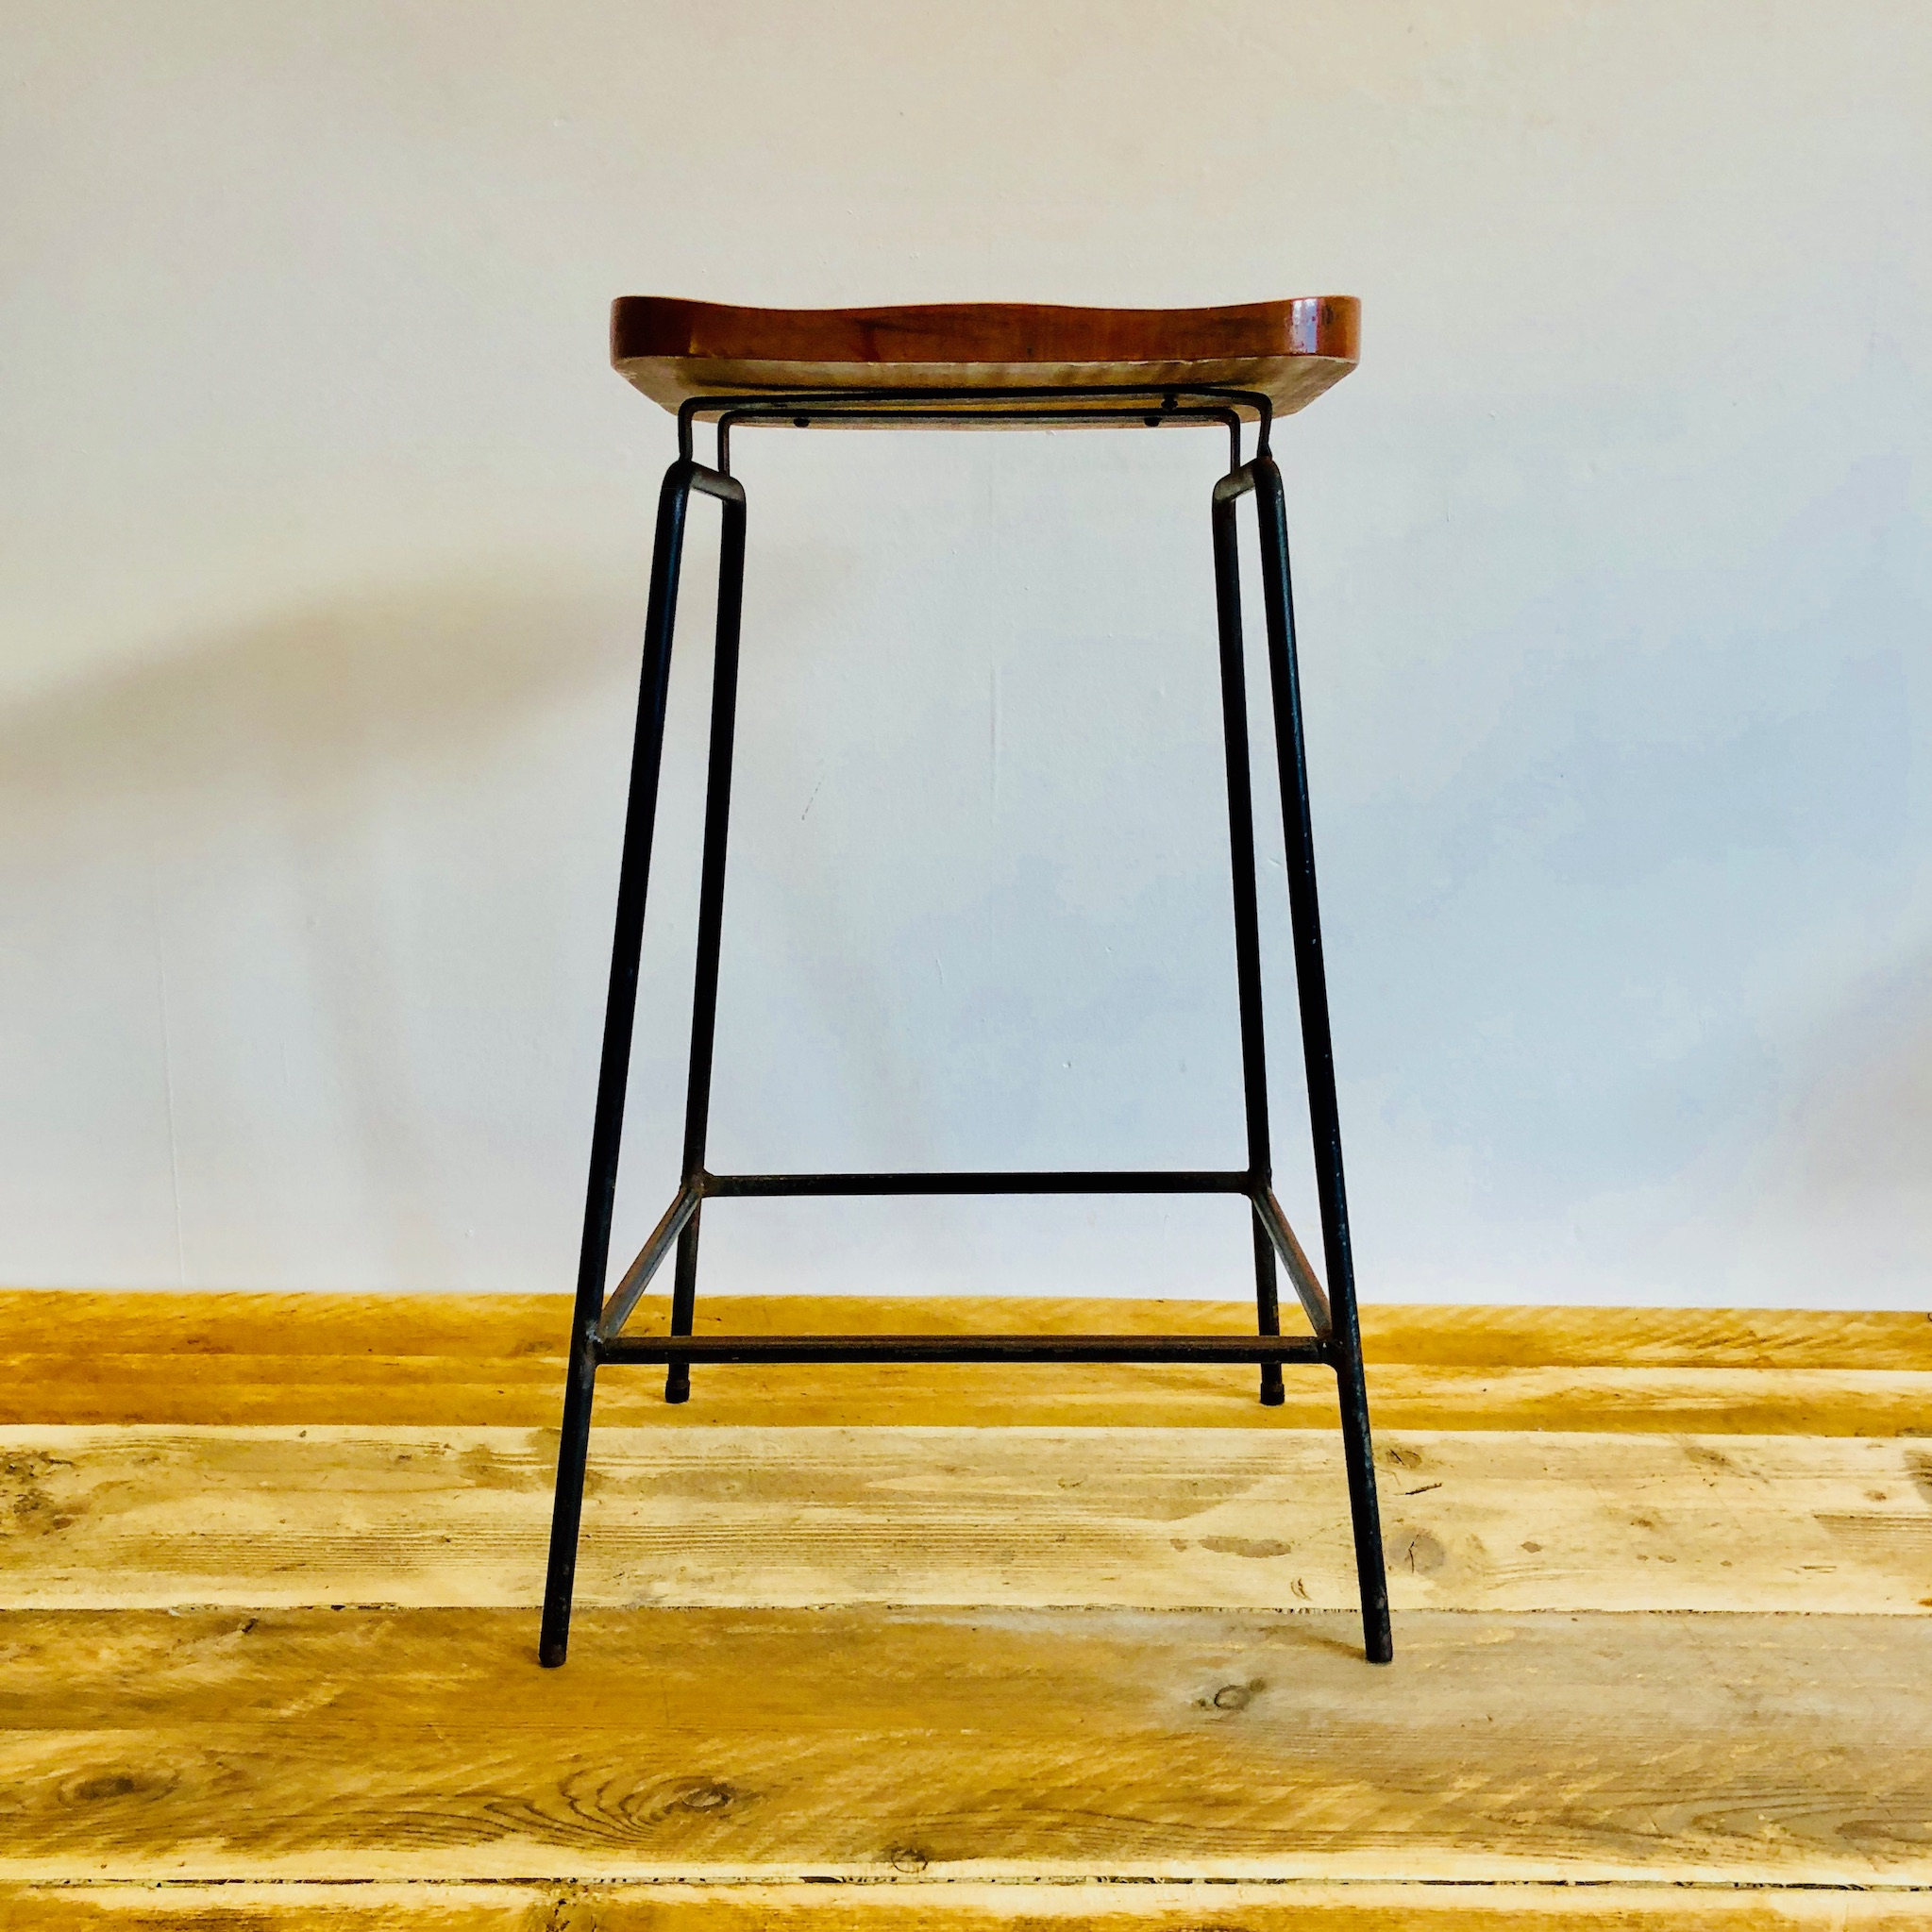 Stupendous Vintage Lab Stools Beatyapartments Chair Design Images Beatyapartmentscom